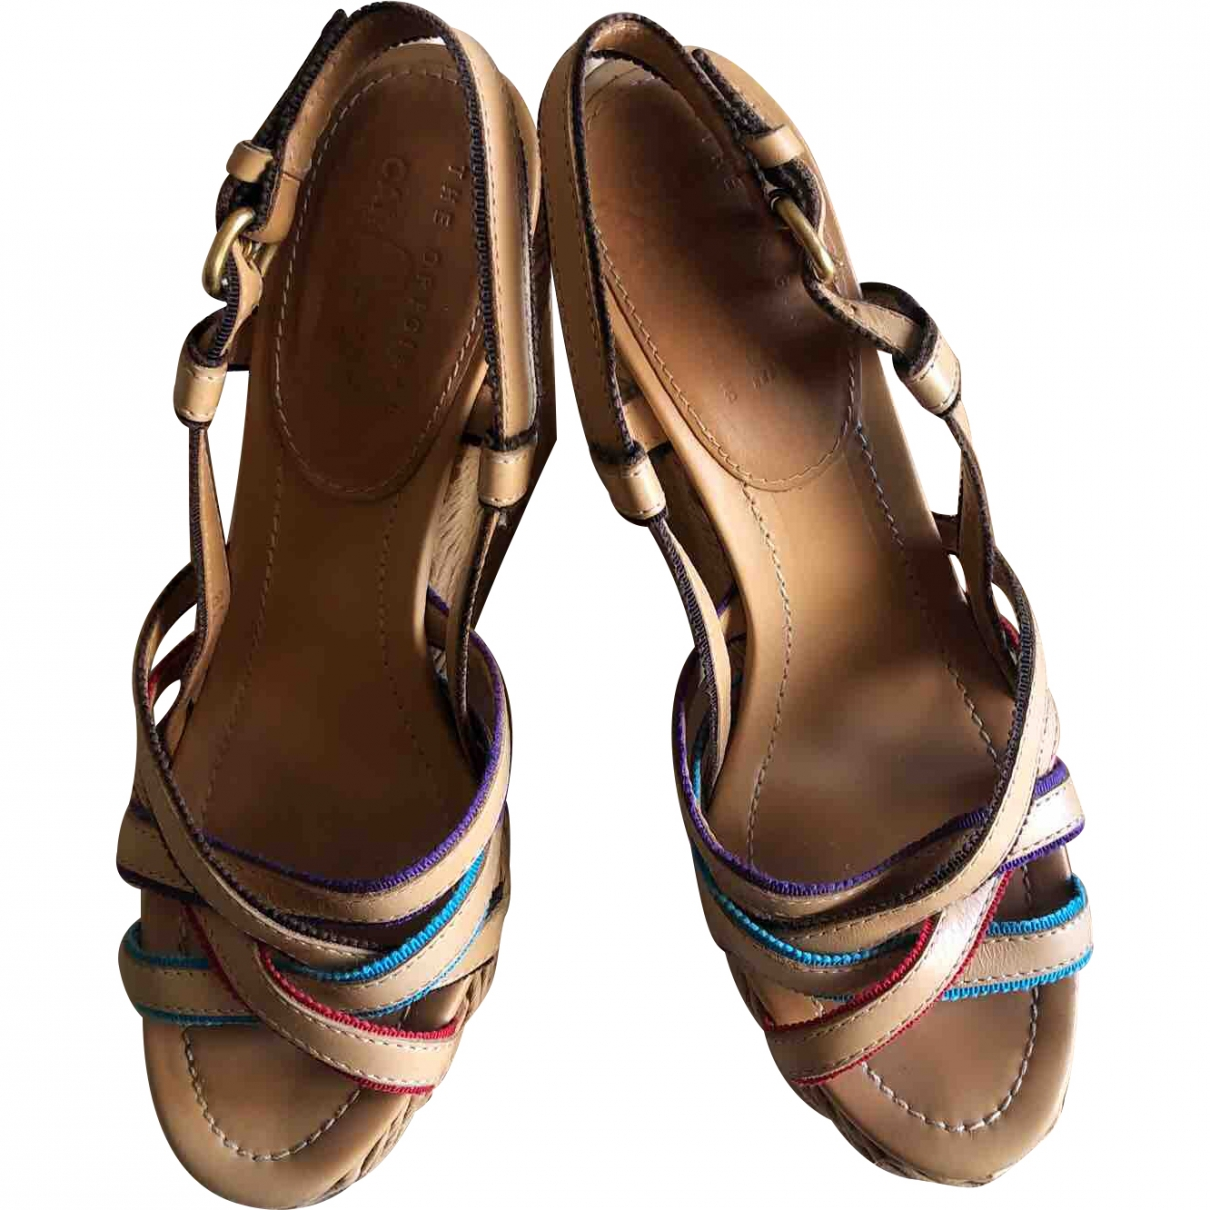 Carshoe \N Leather Sandals for Women 39 EU